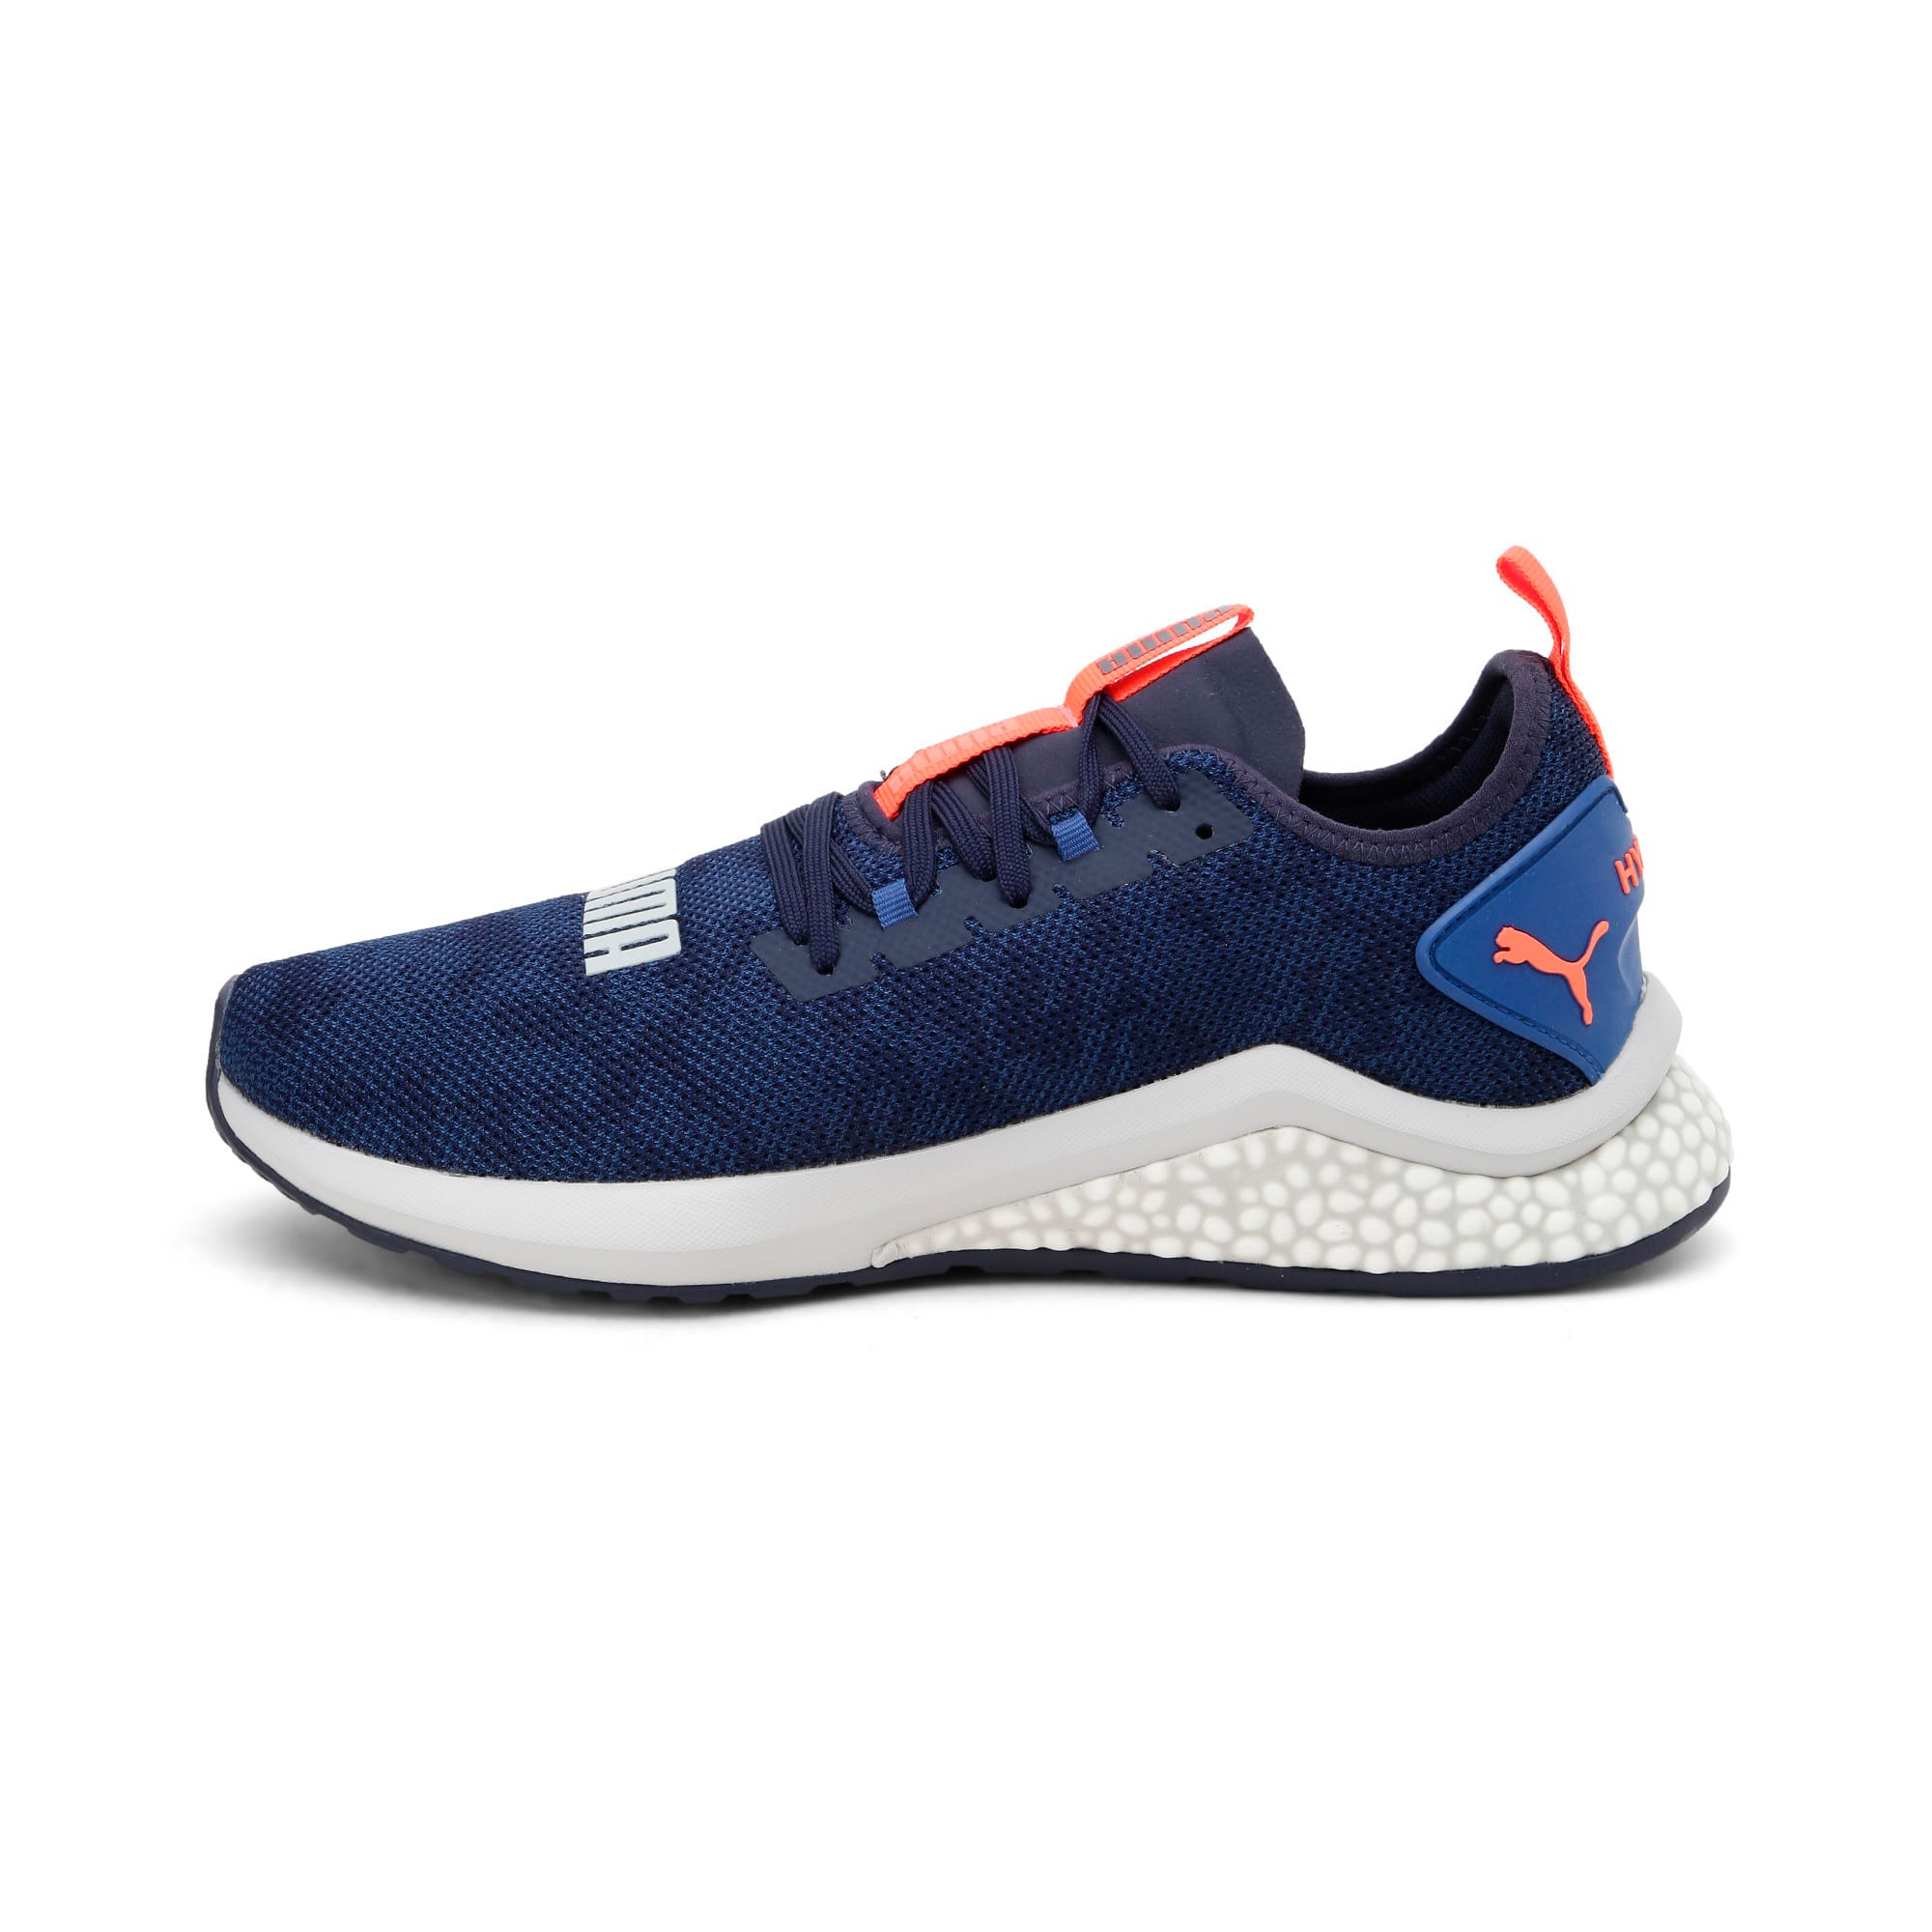 Thumbnail 1 of Hybrid NX Camo Men's Running Sneakers, GalaxyBlue-Peacoat-HighRise, medium-IND